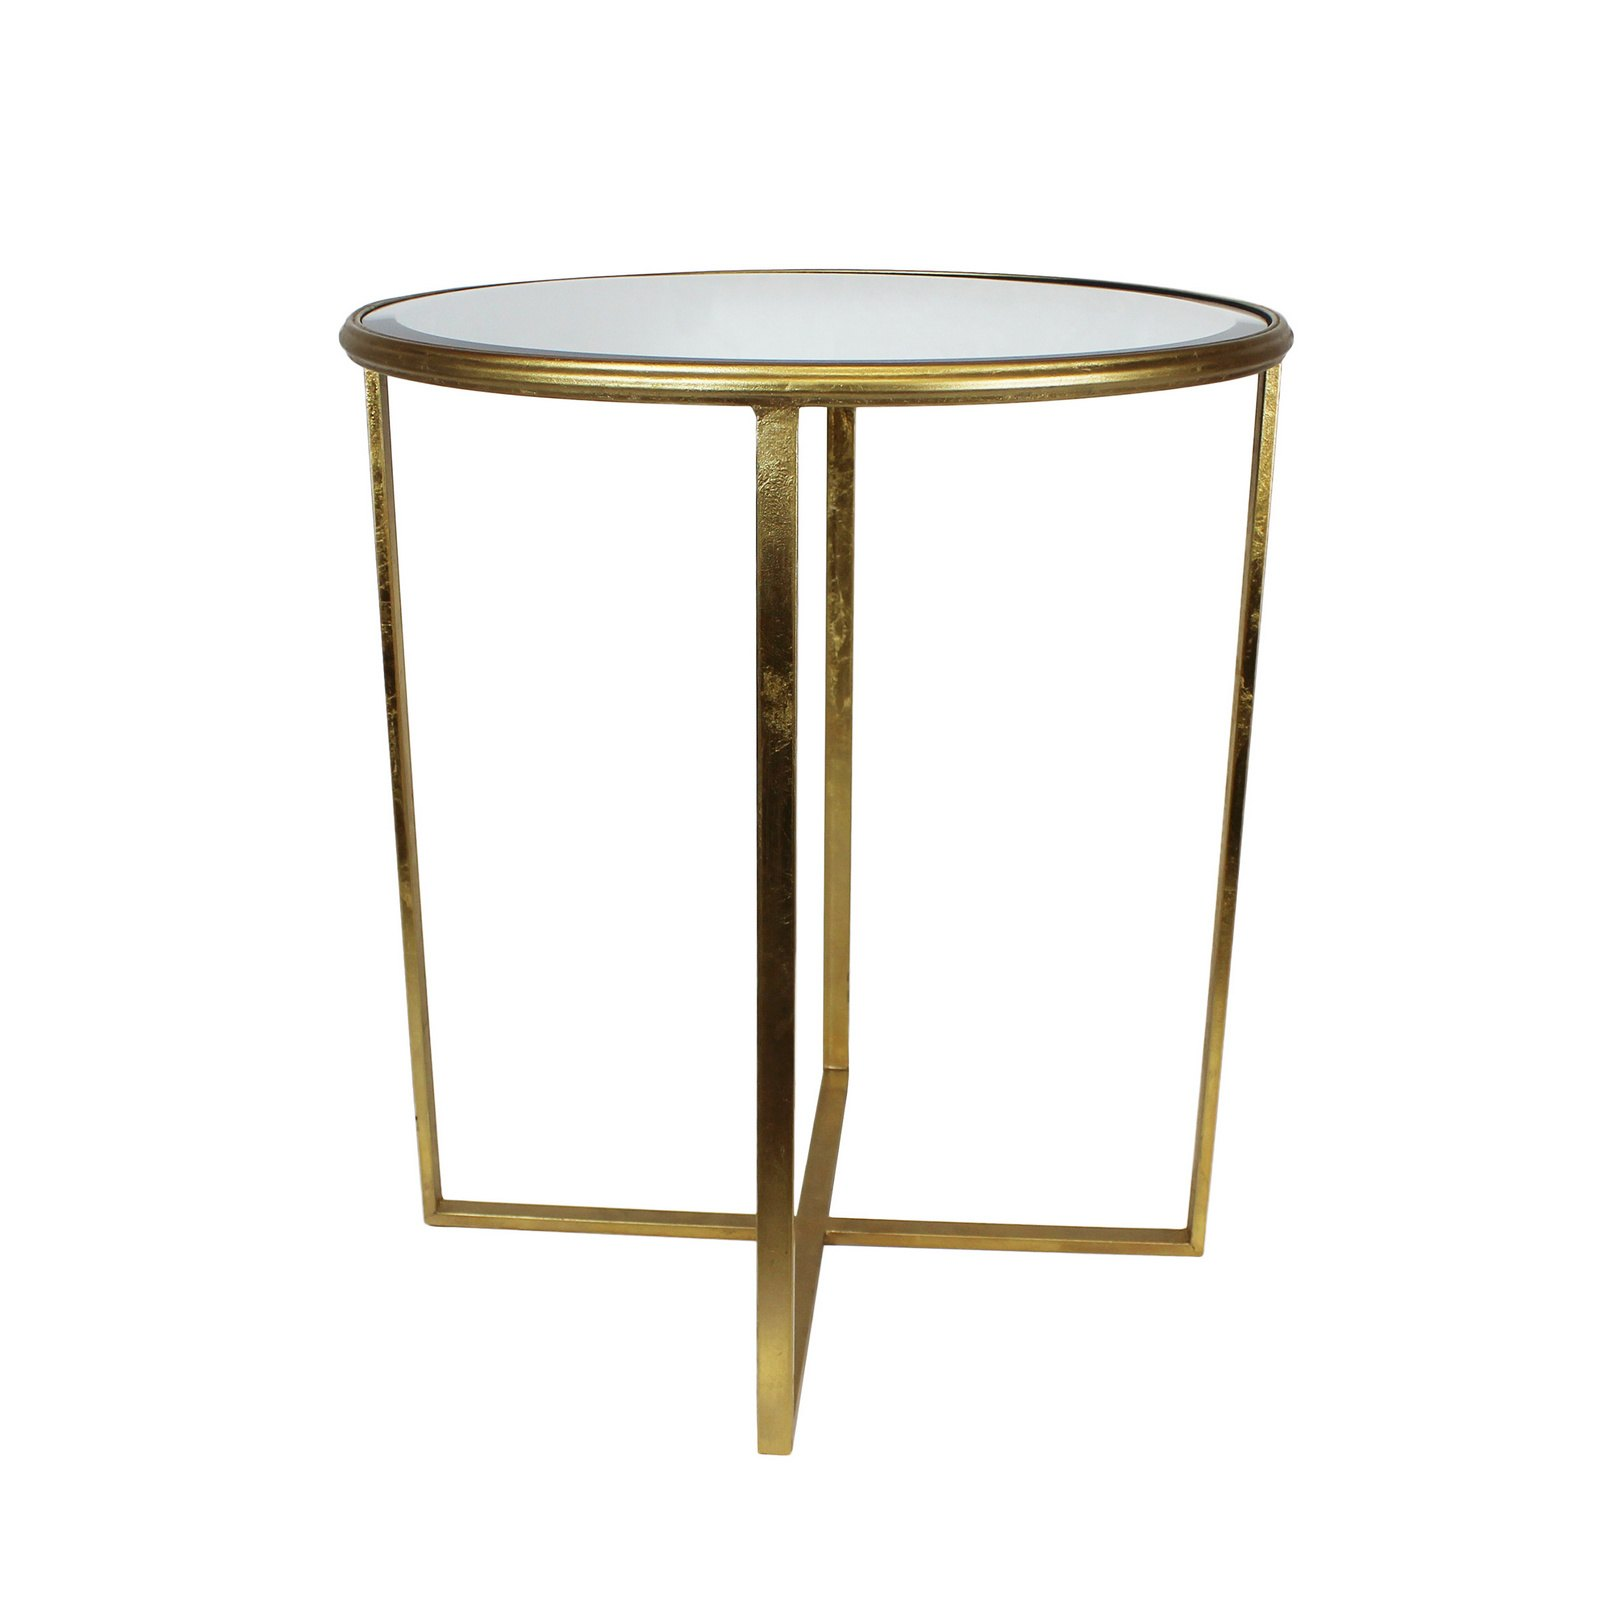 mom urban designs round gold mirror accent table set metal wood drum inch wide nightstand plastic patio side red tension rod argos coffee console cabinets dining high top pub and